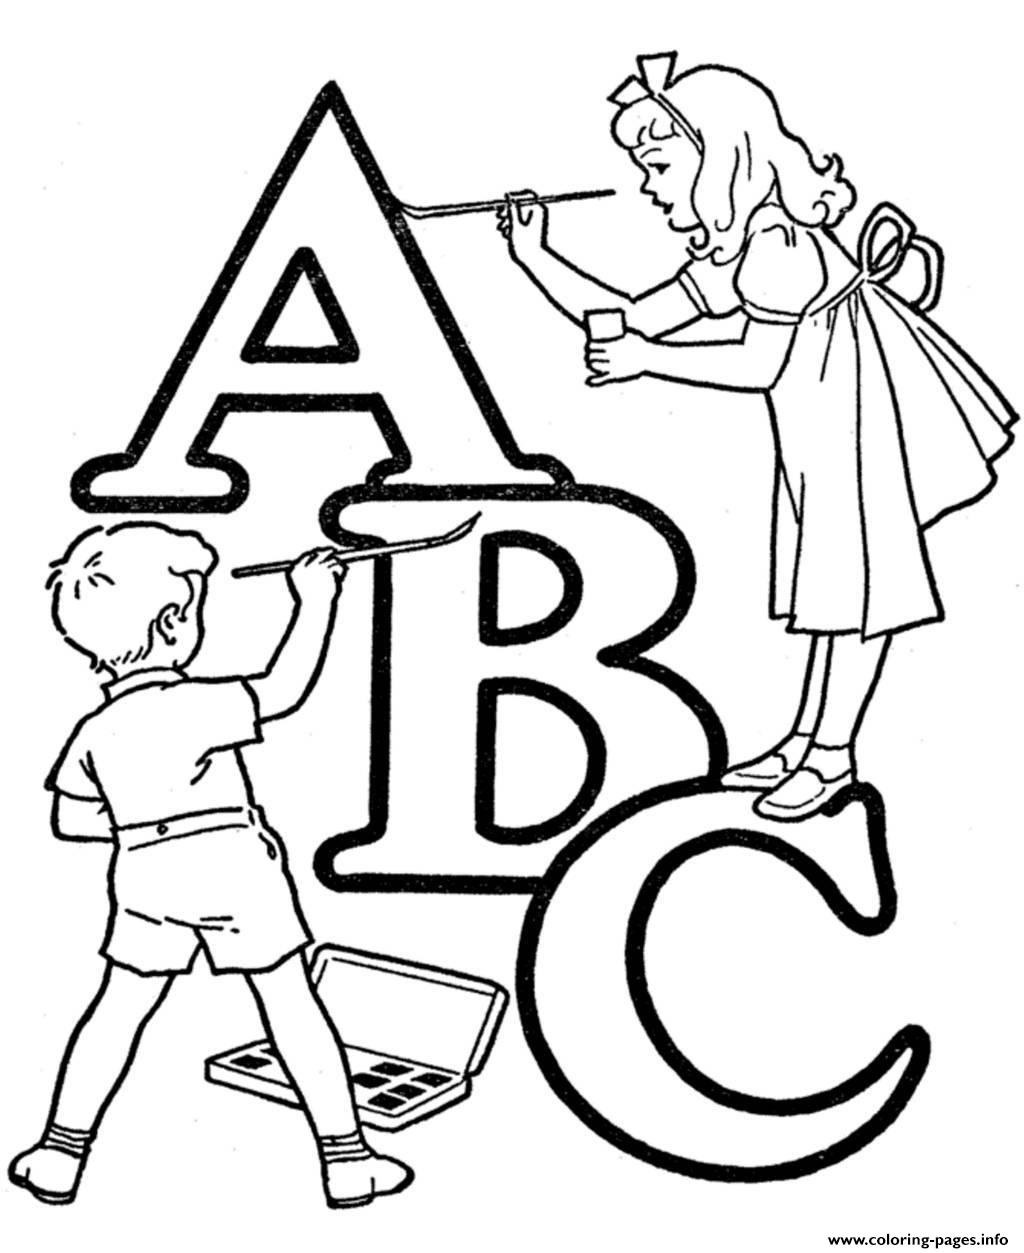 Alphabet S Printable Abc Coloring Kidsf593 Coloring Pages Printable